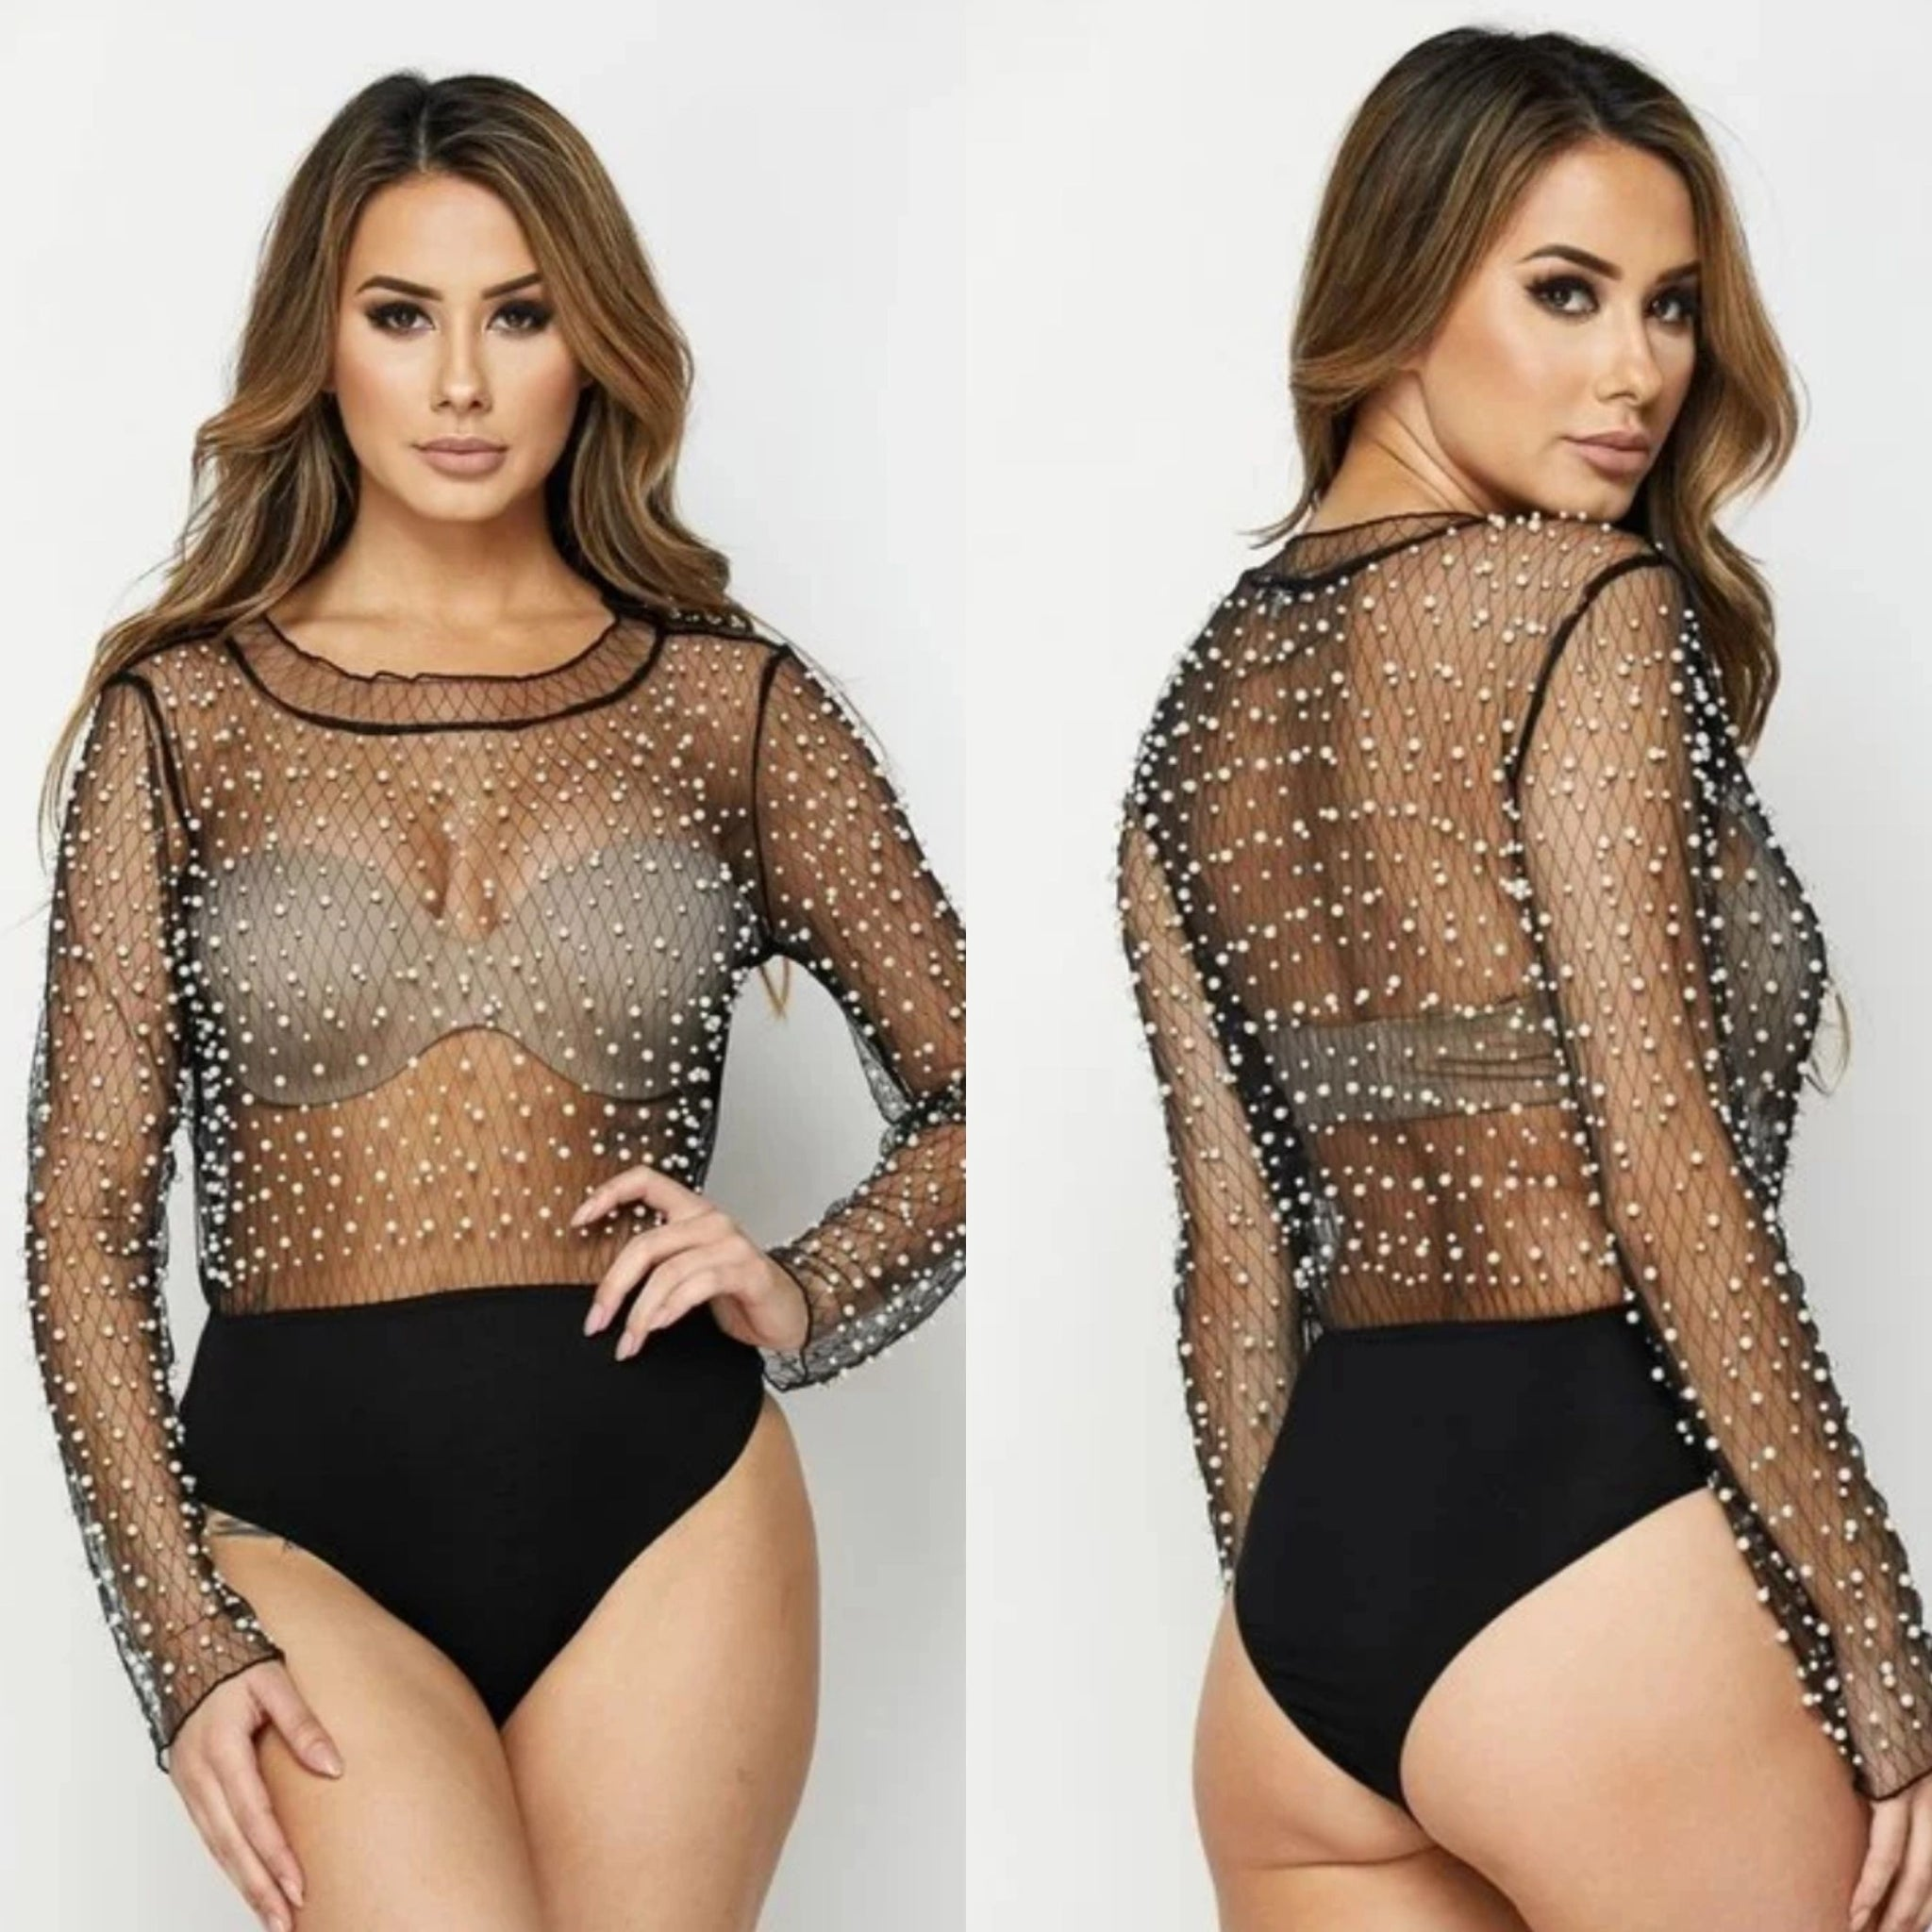 Shari Pearl Body Suit